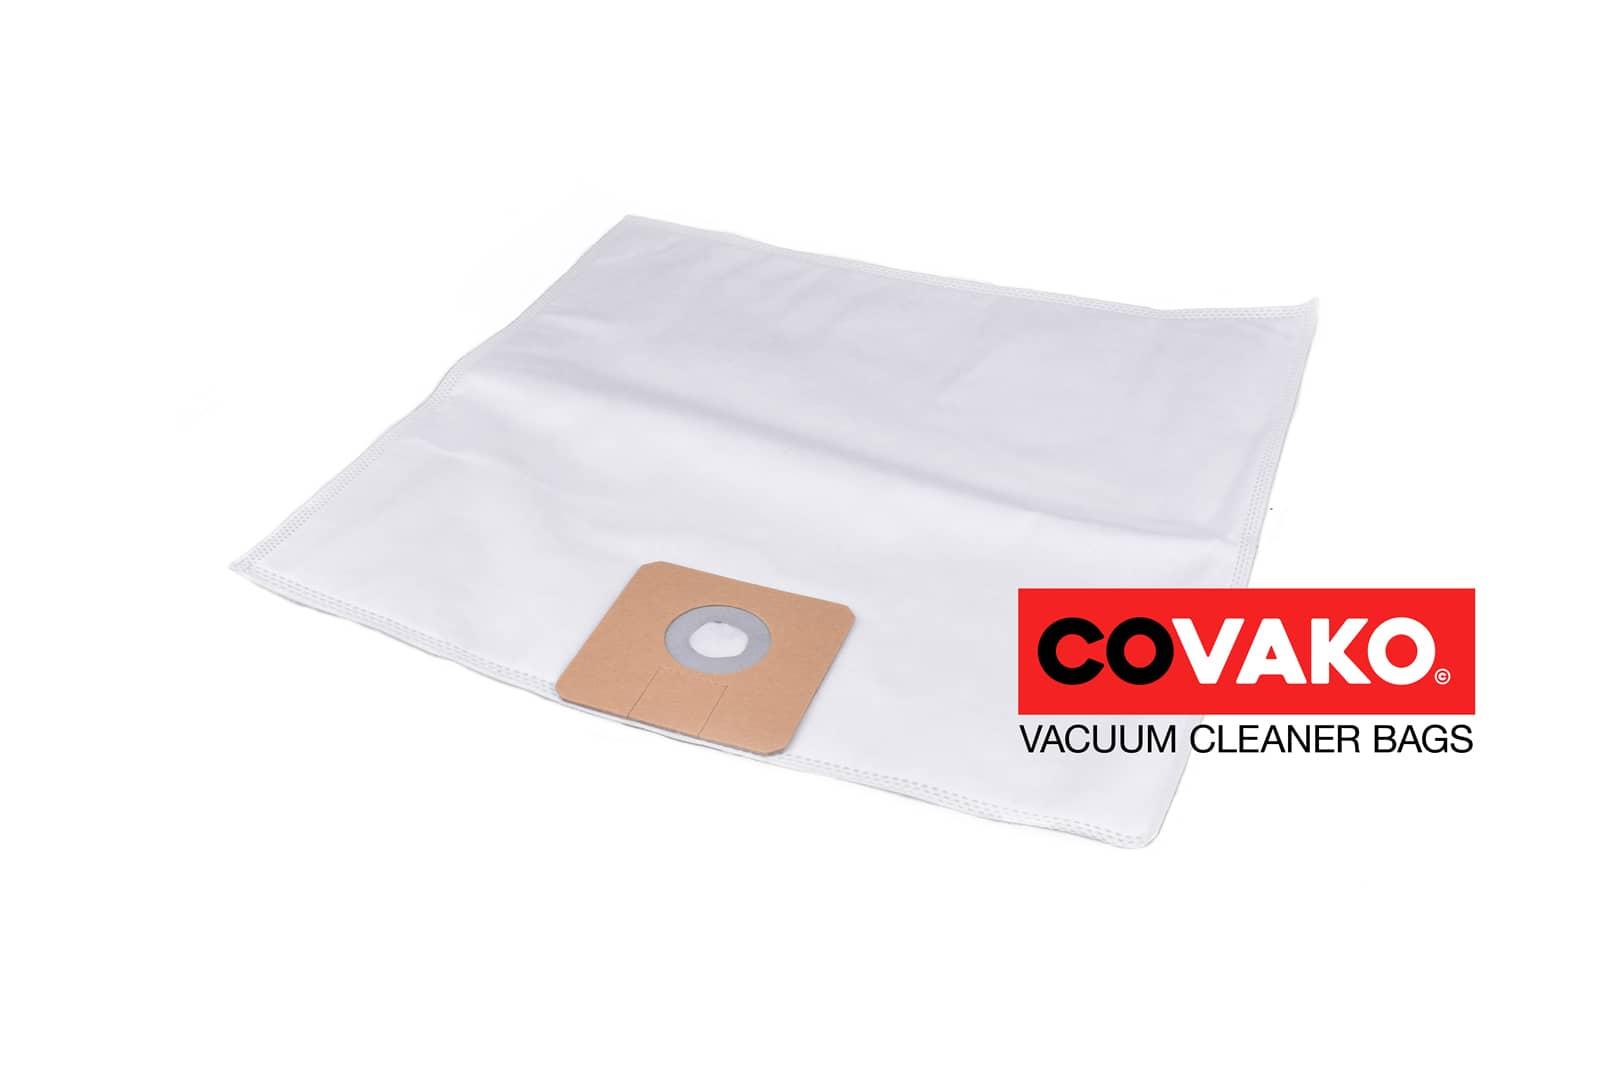 Ecolab S 12 / Synthesis - Ecolab vacuum cleaner bags